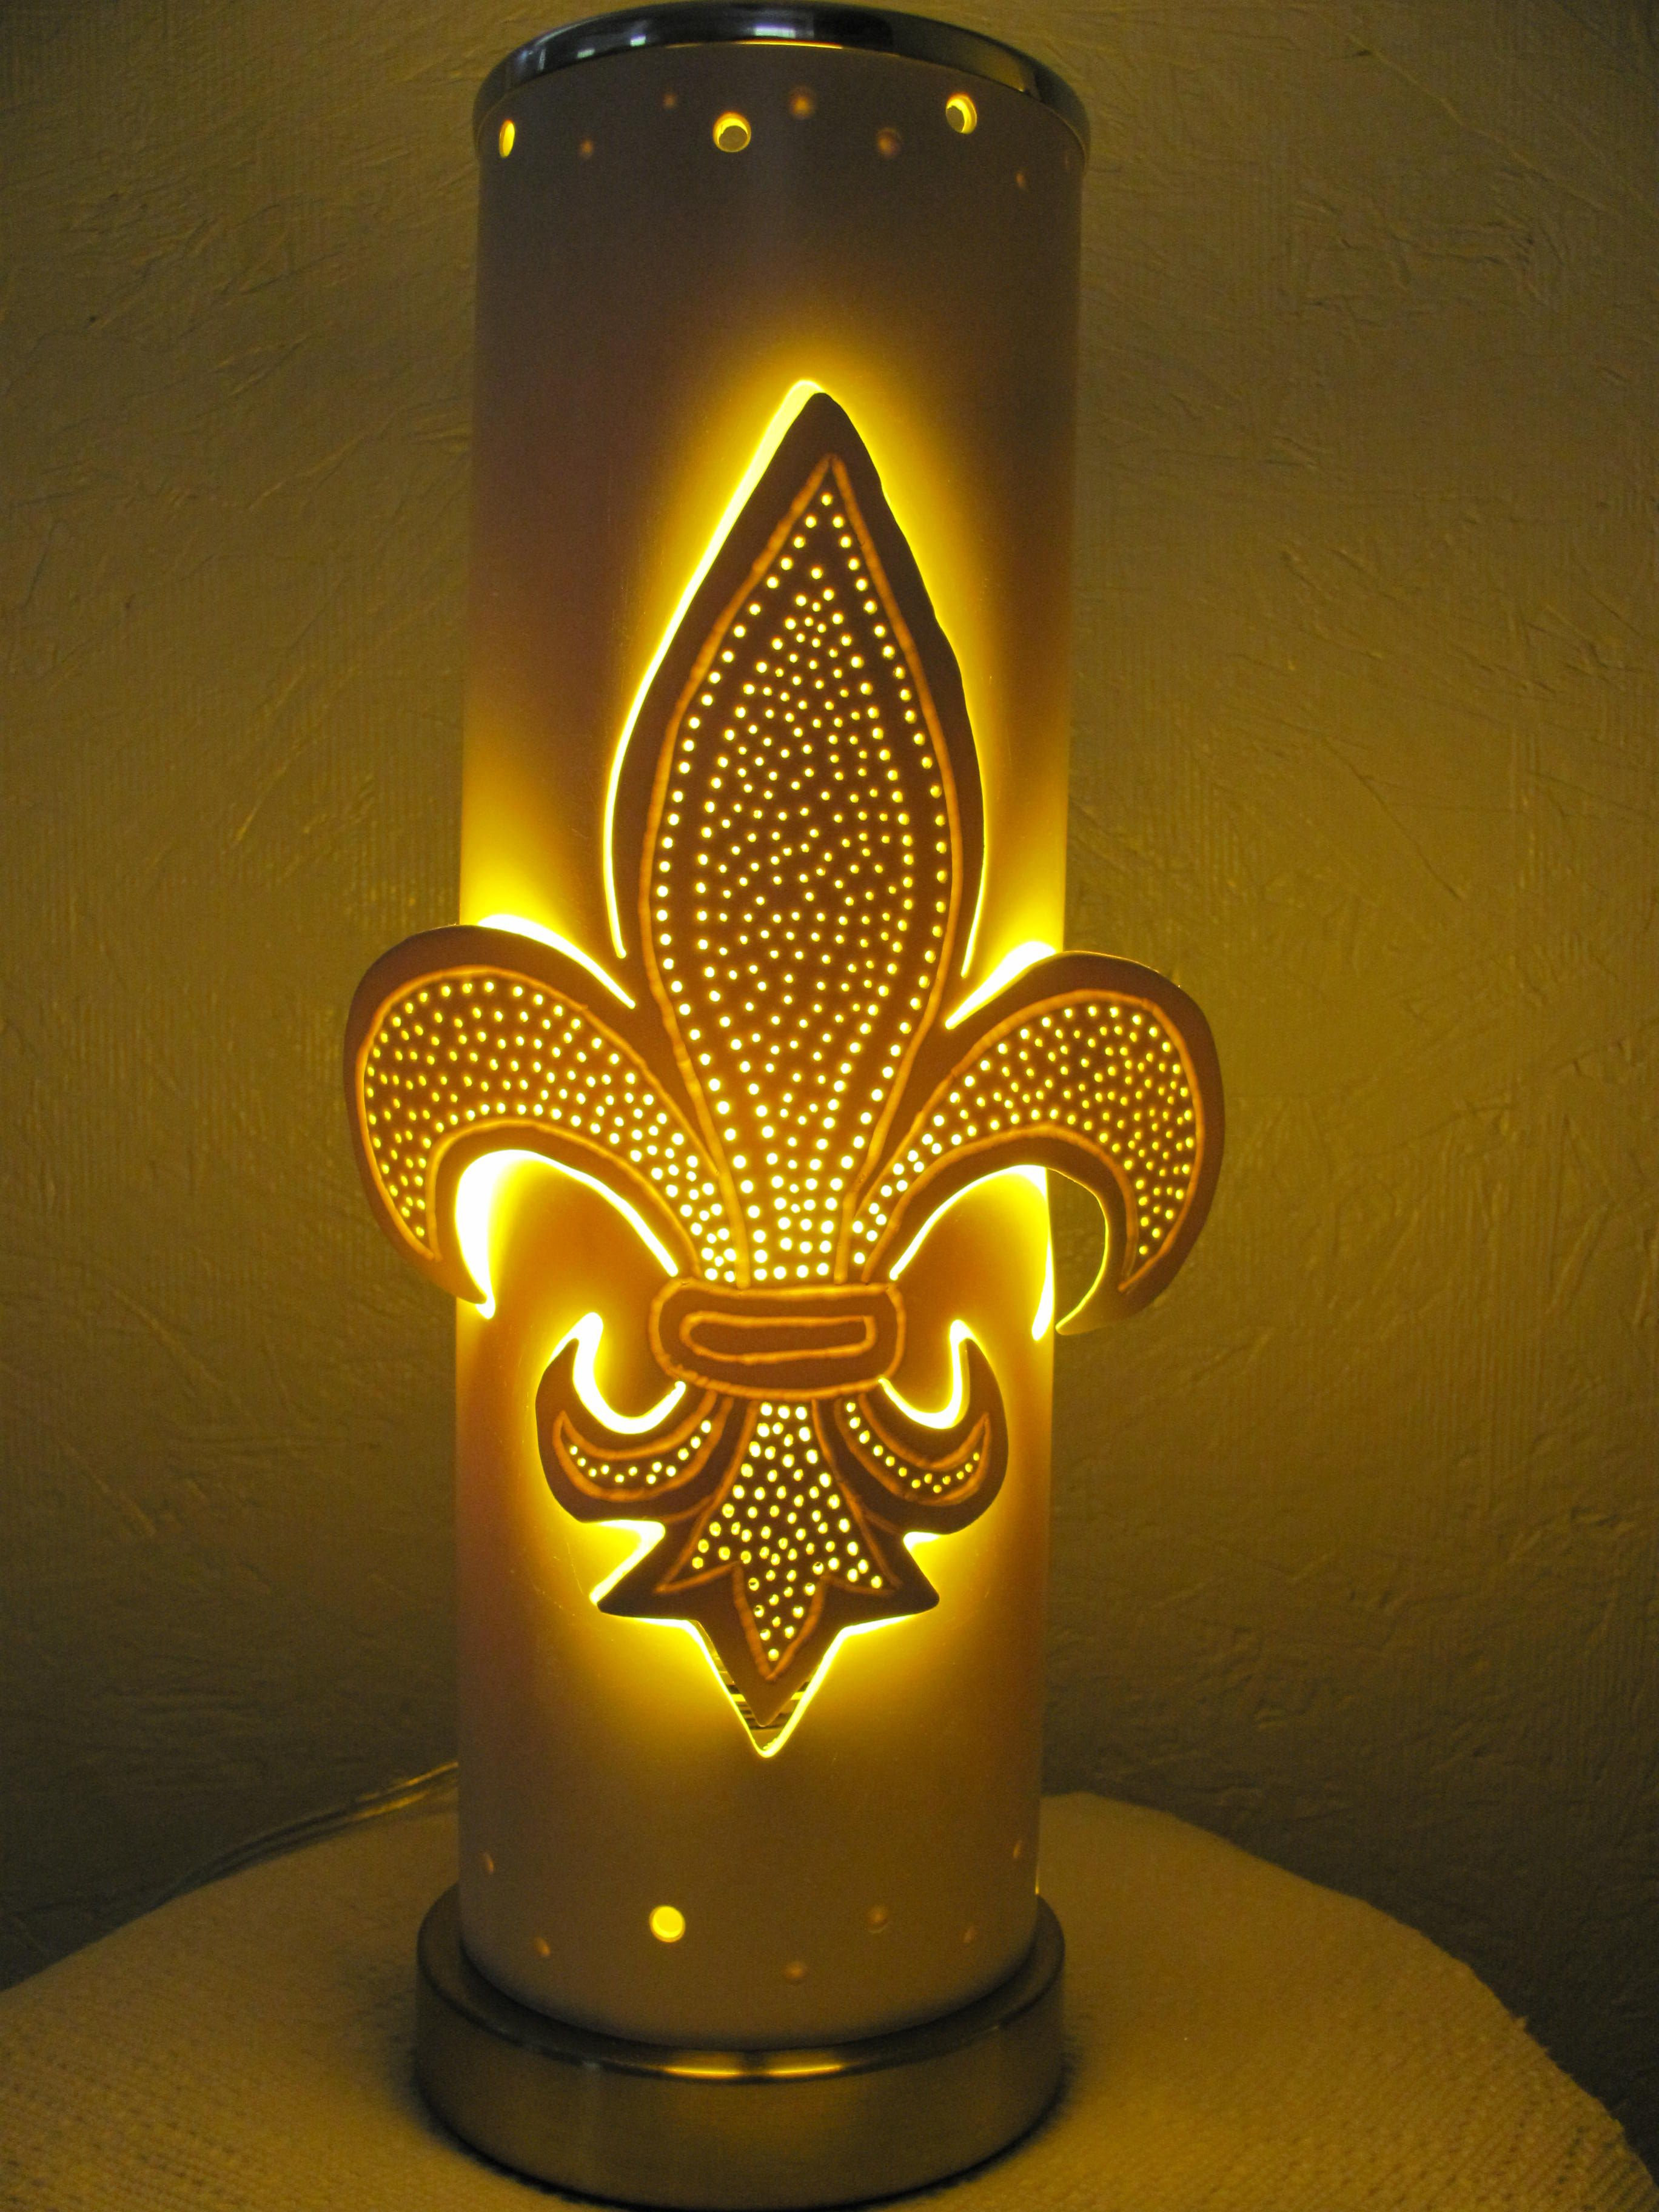 Handmade Pvc Lamps Www Pvclamps Weebly Com Ideias Dremel